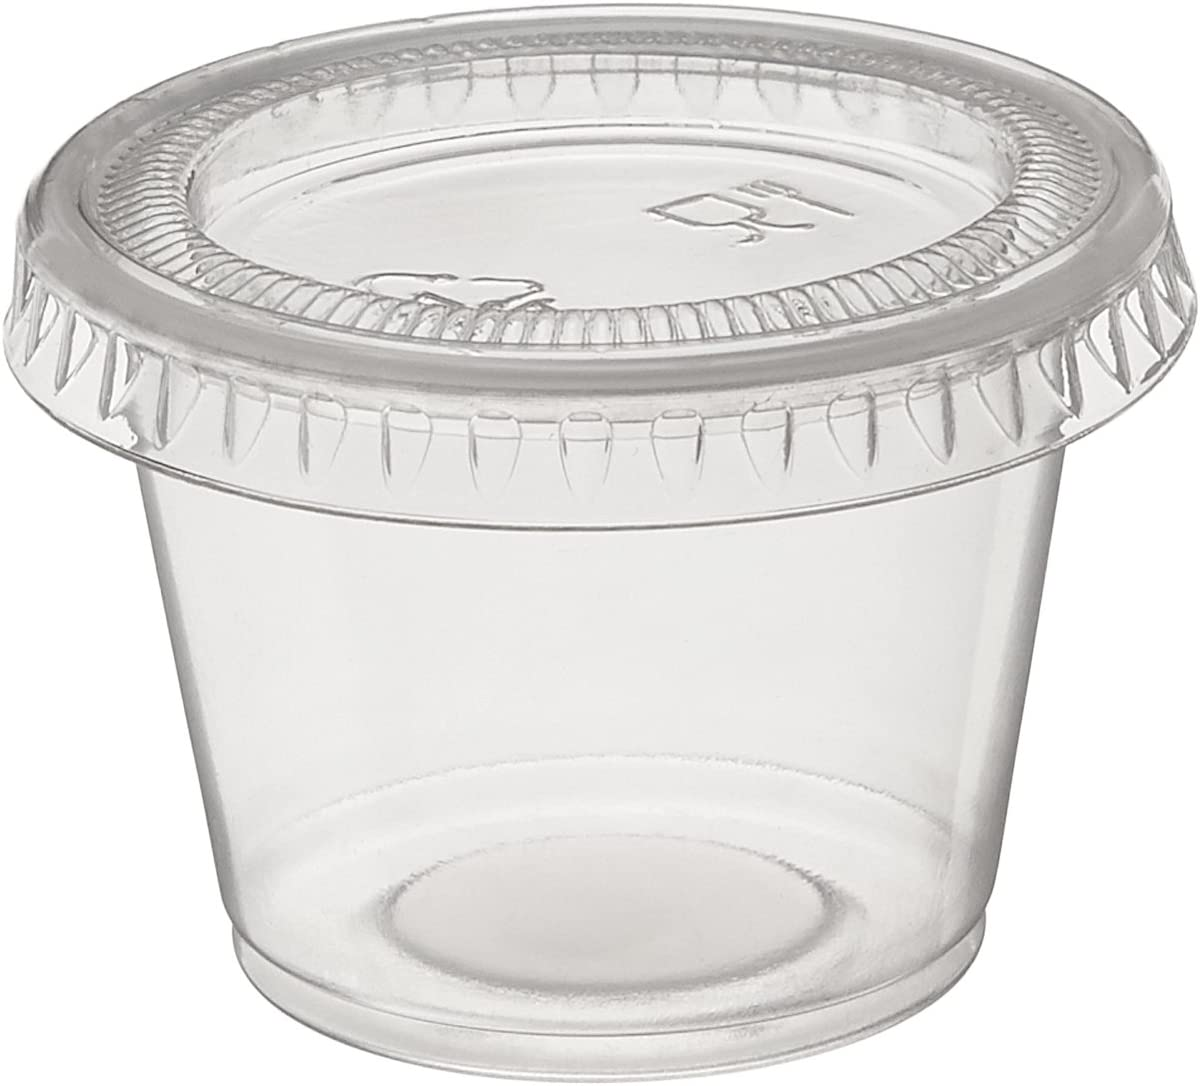 160 Small Plastic SHOT CUPS...... clear 1 oz cups